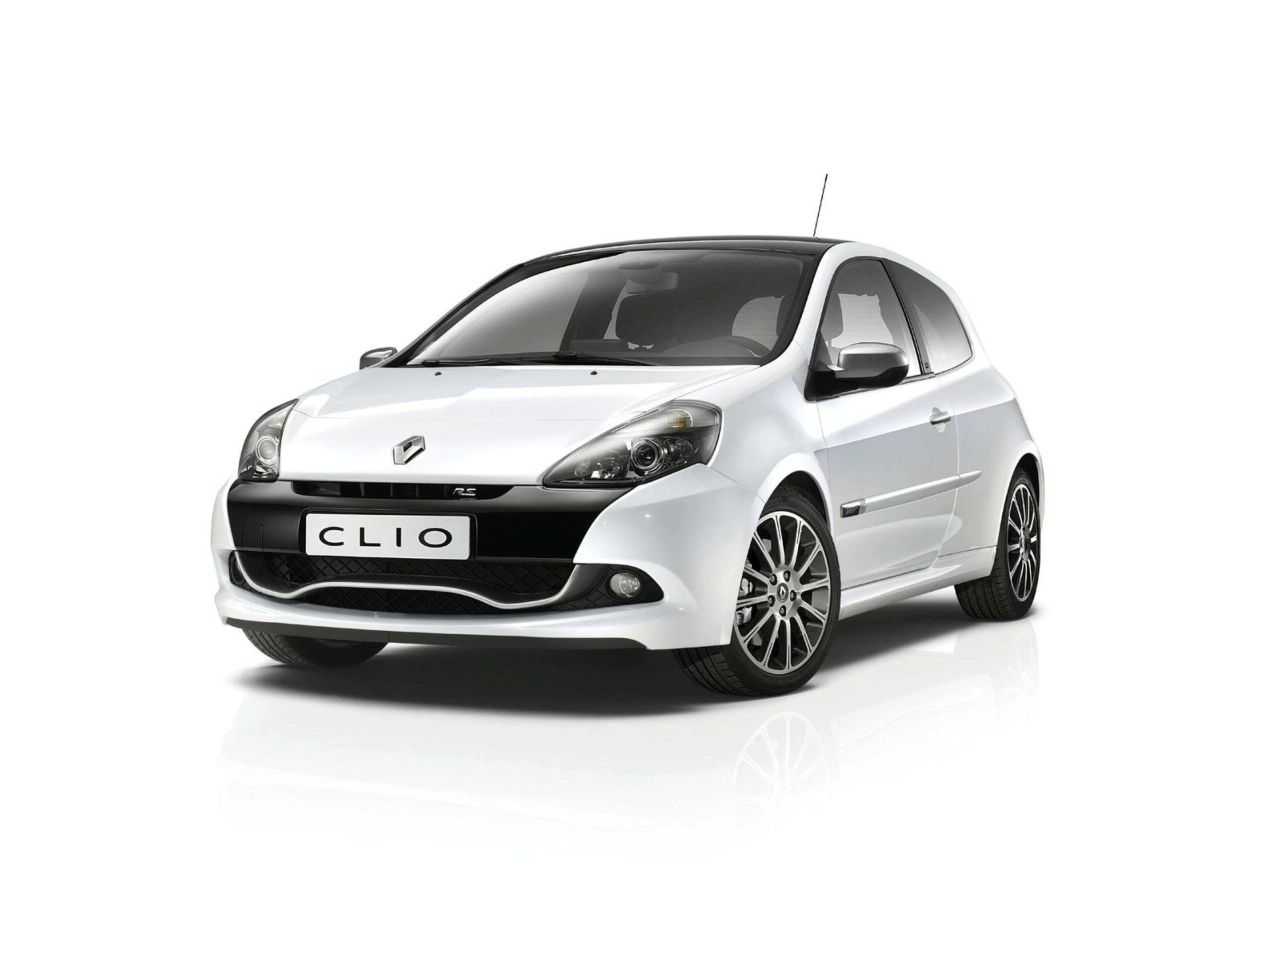 2010 renault clio rs 20th anniversary special edition. Black Bedroom Furniture Sets. Home Design Ideas